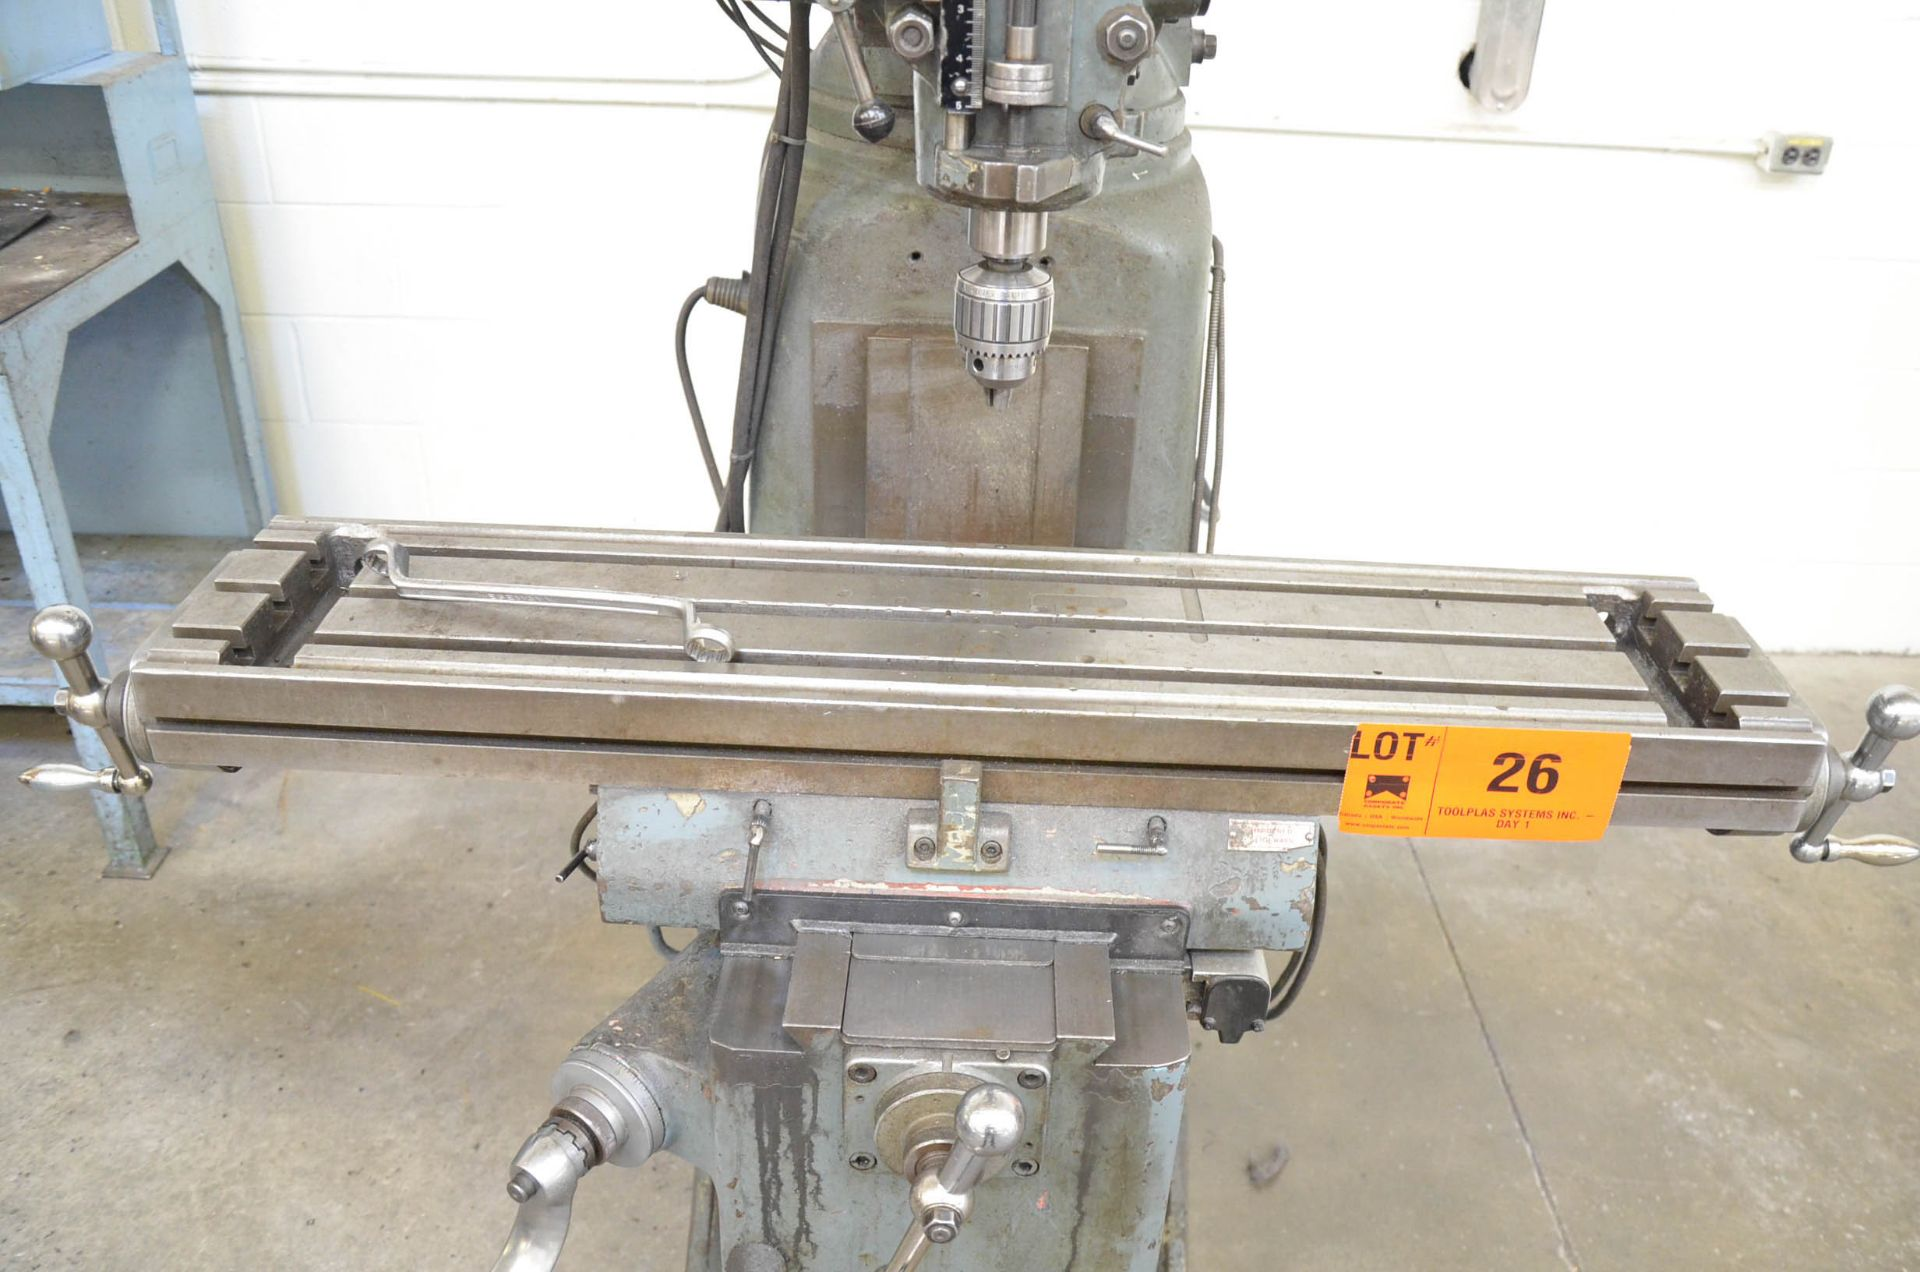 """KONDIA POWERMILL TYPE FV-1 VERTICAL TURRET MILLING MACHINE WITH 9""""X42"""" TABLE, SPEEDS TO 4,000RPM, - Image 6 of 6"""